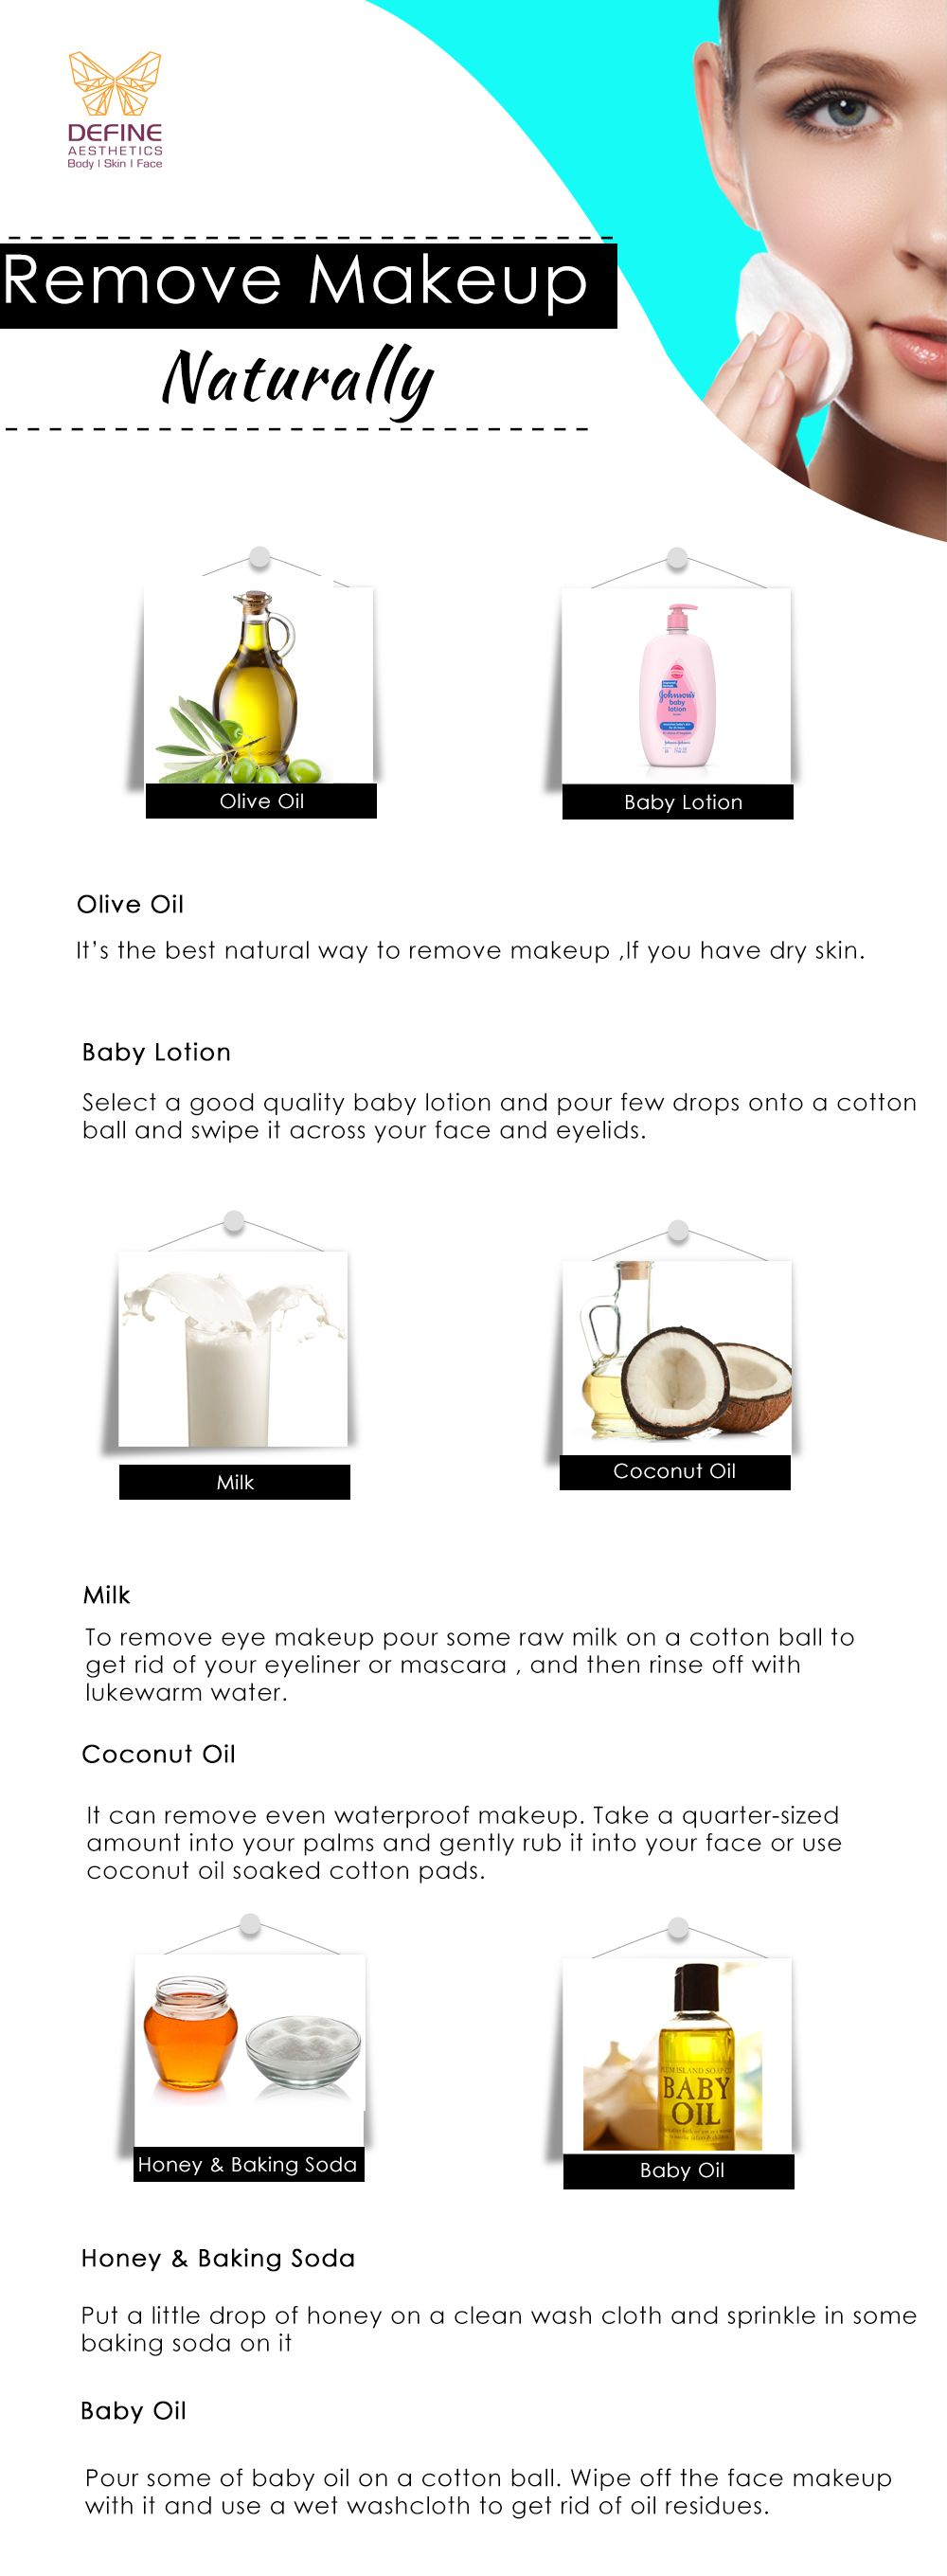 You can make your own DIY makeupremover at home using